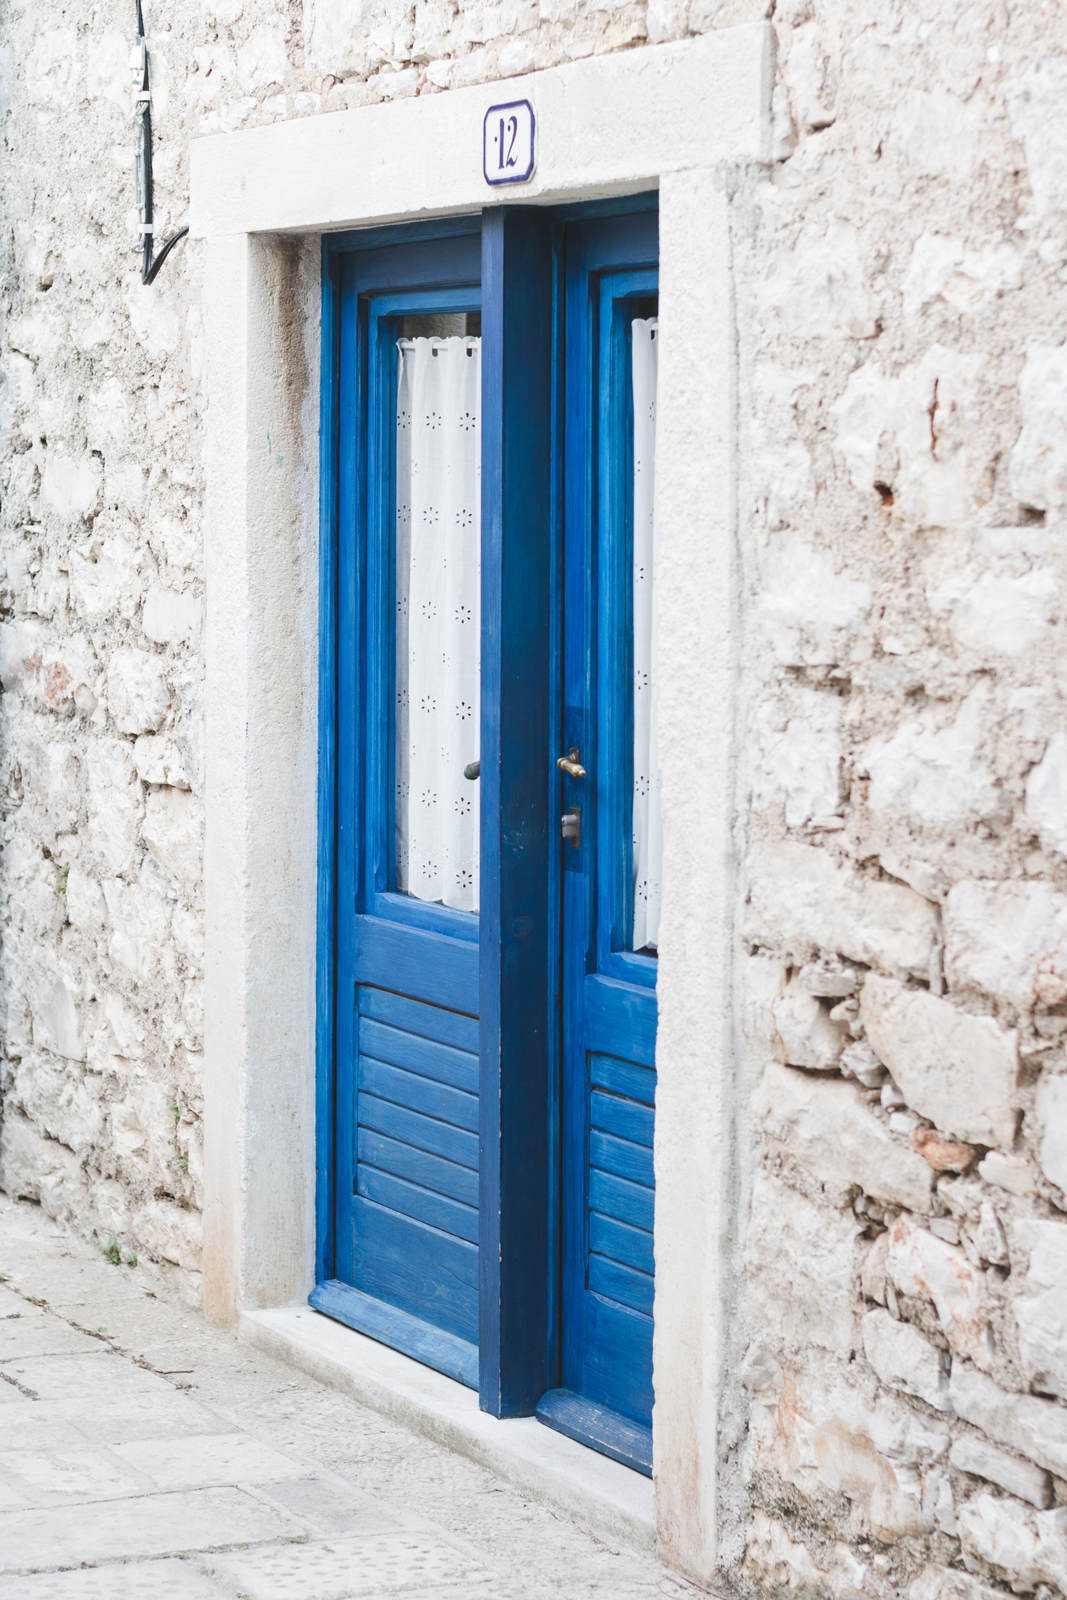 Blue door in Stari Grad, Croatia - from travel blog: http://Epepa.eu